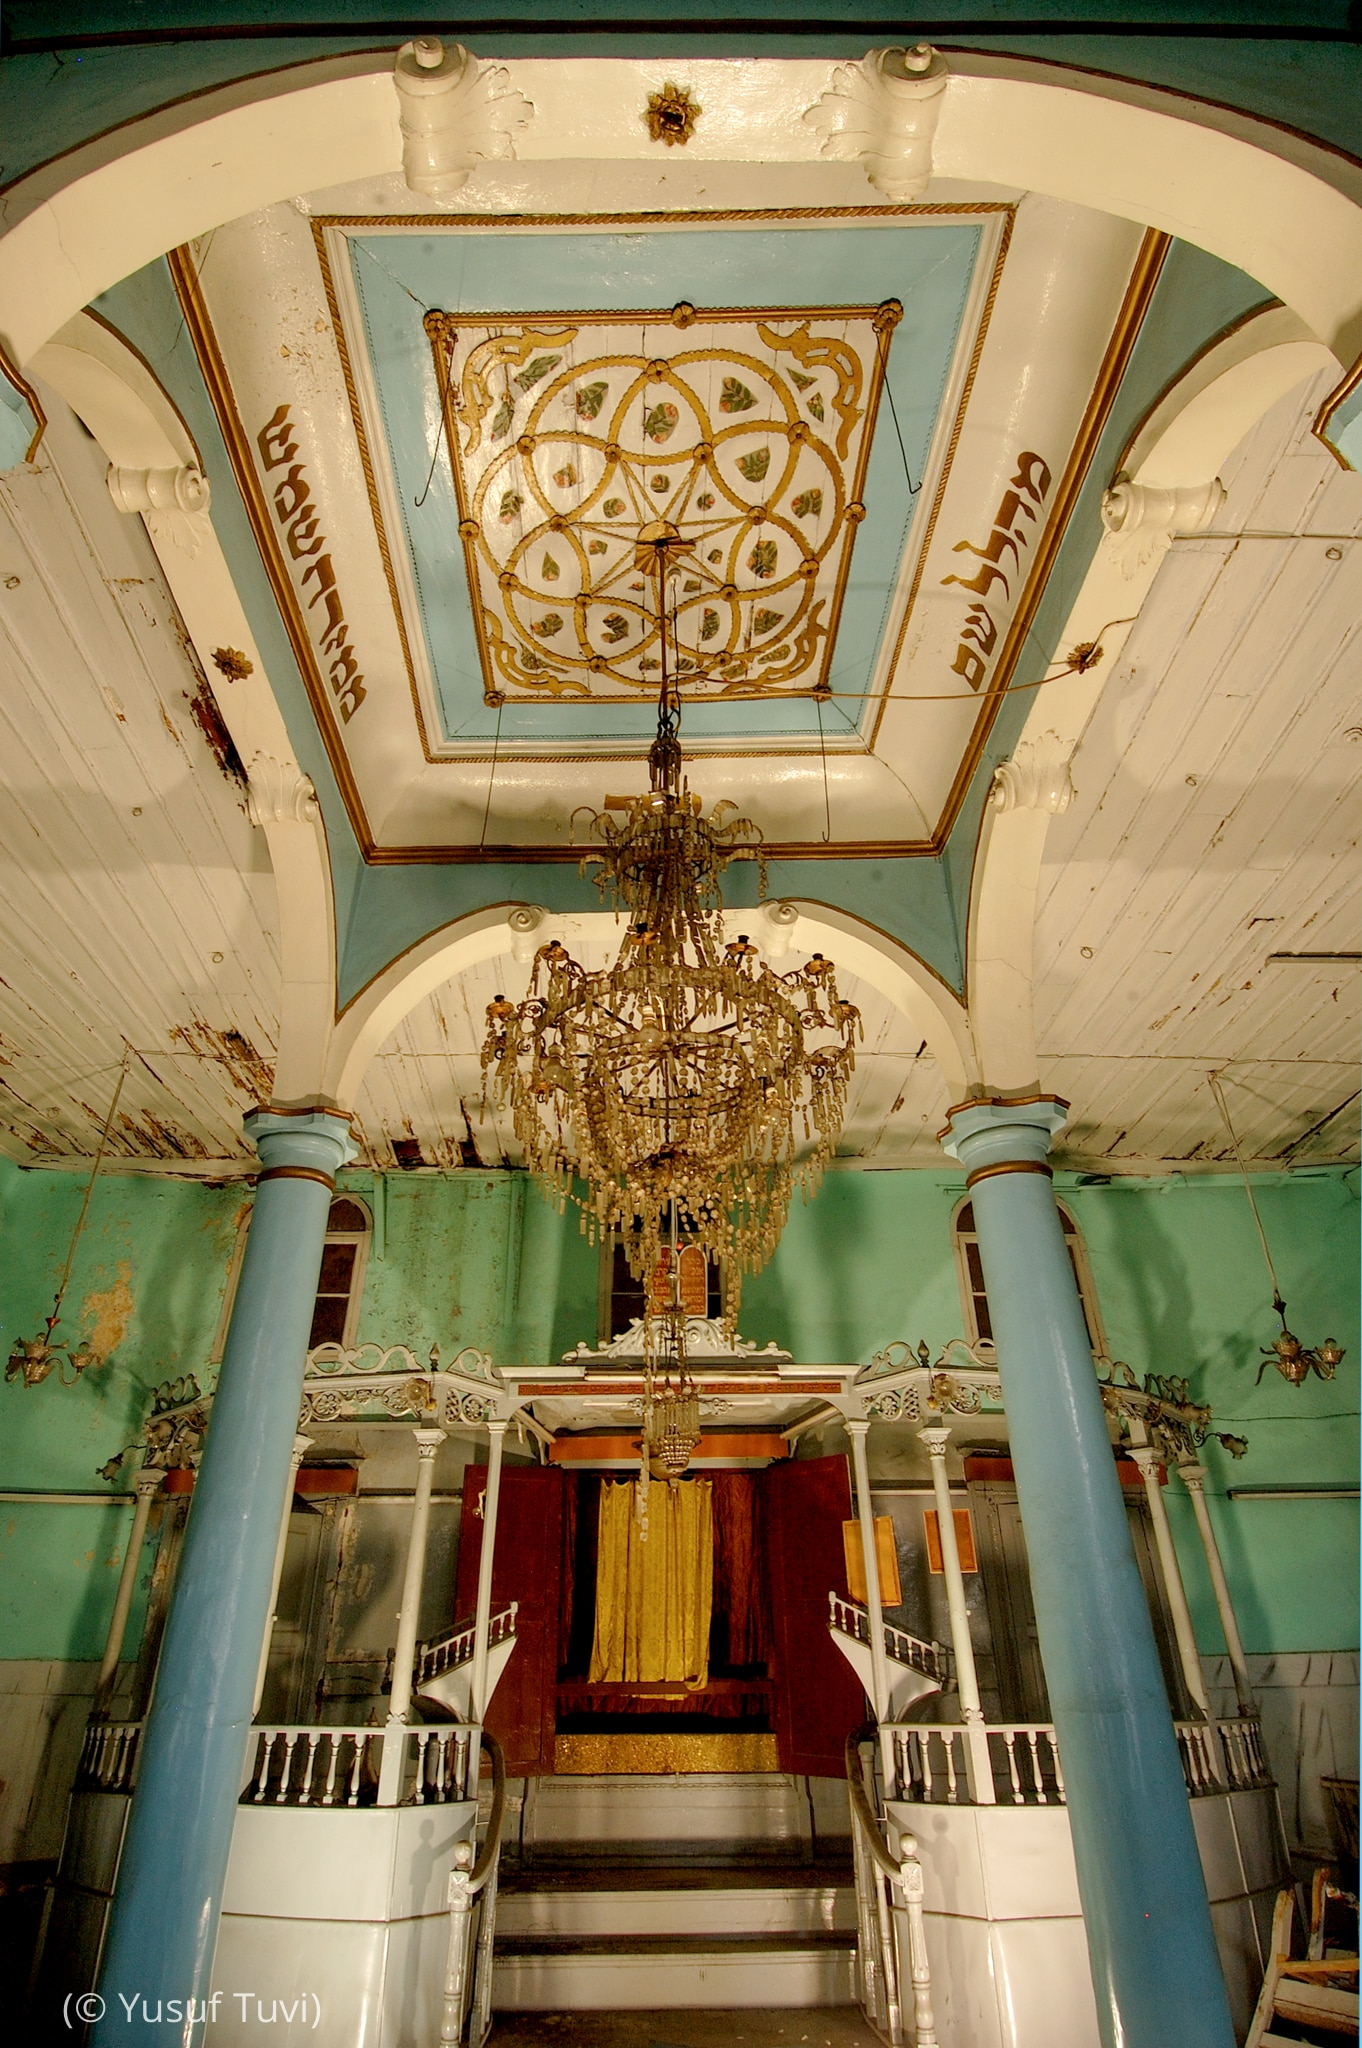 Decorated ceiling and painted beams of Etz Hayim synagogue (© Yusuf Tuvi)